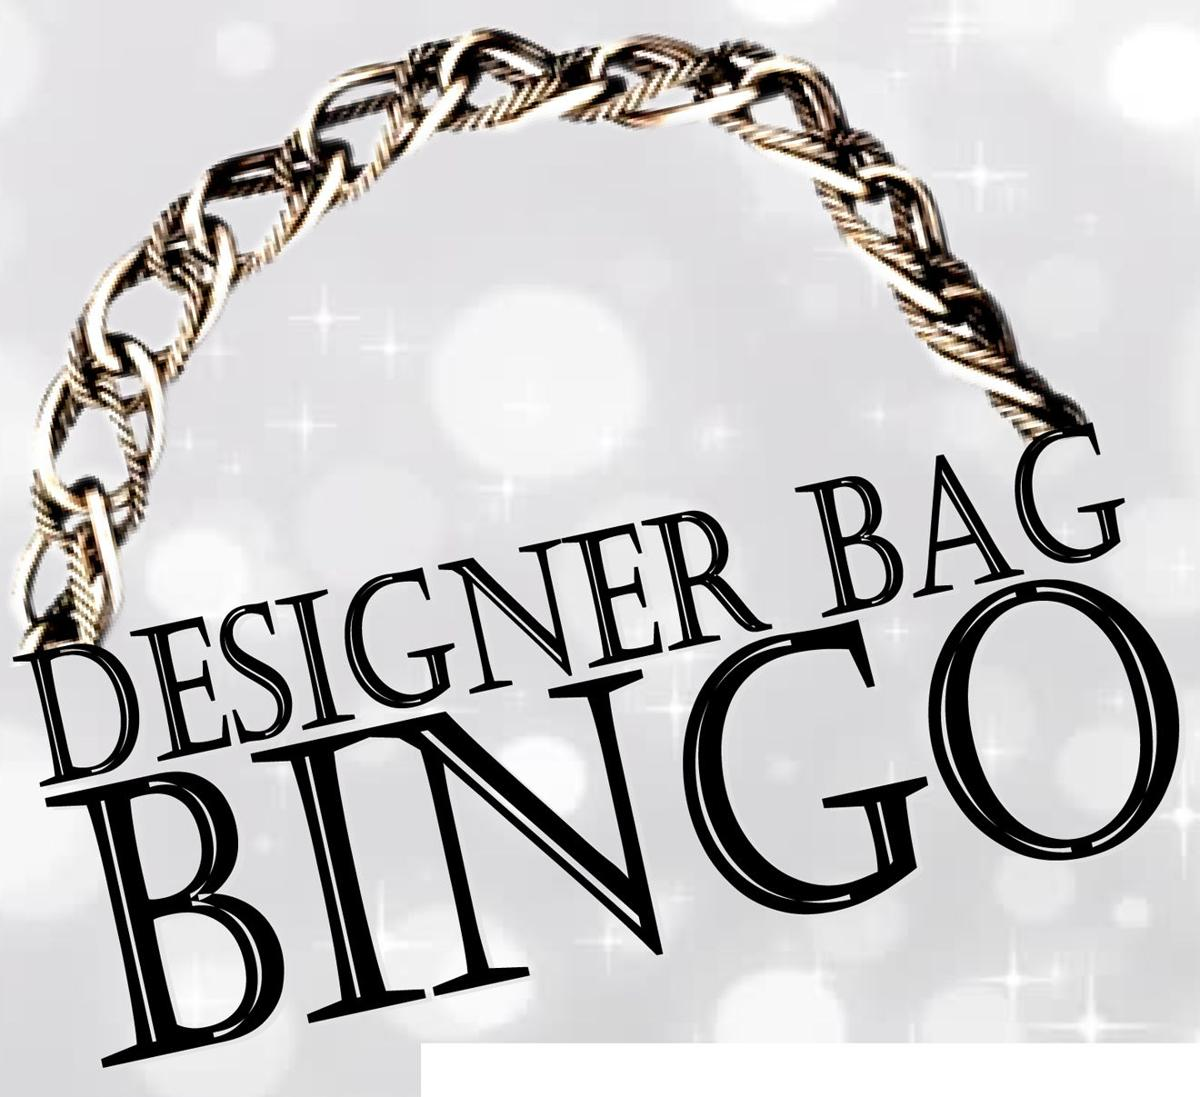 Designer bag bingo slated to help with funding for Escondido Parkway project